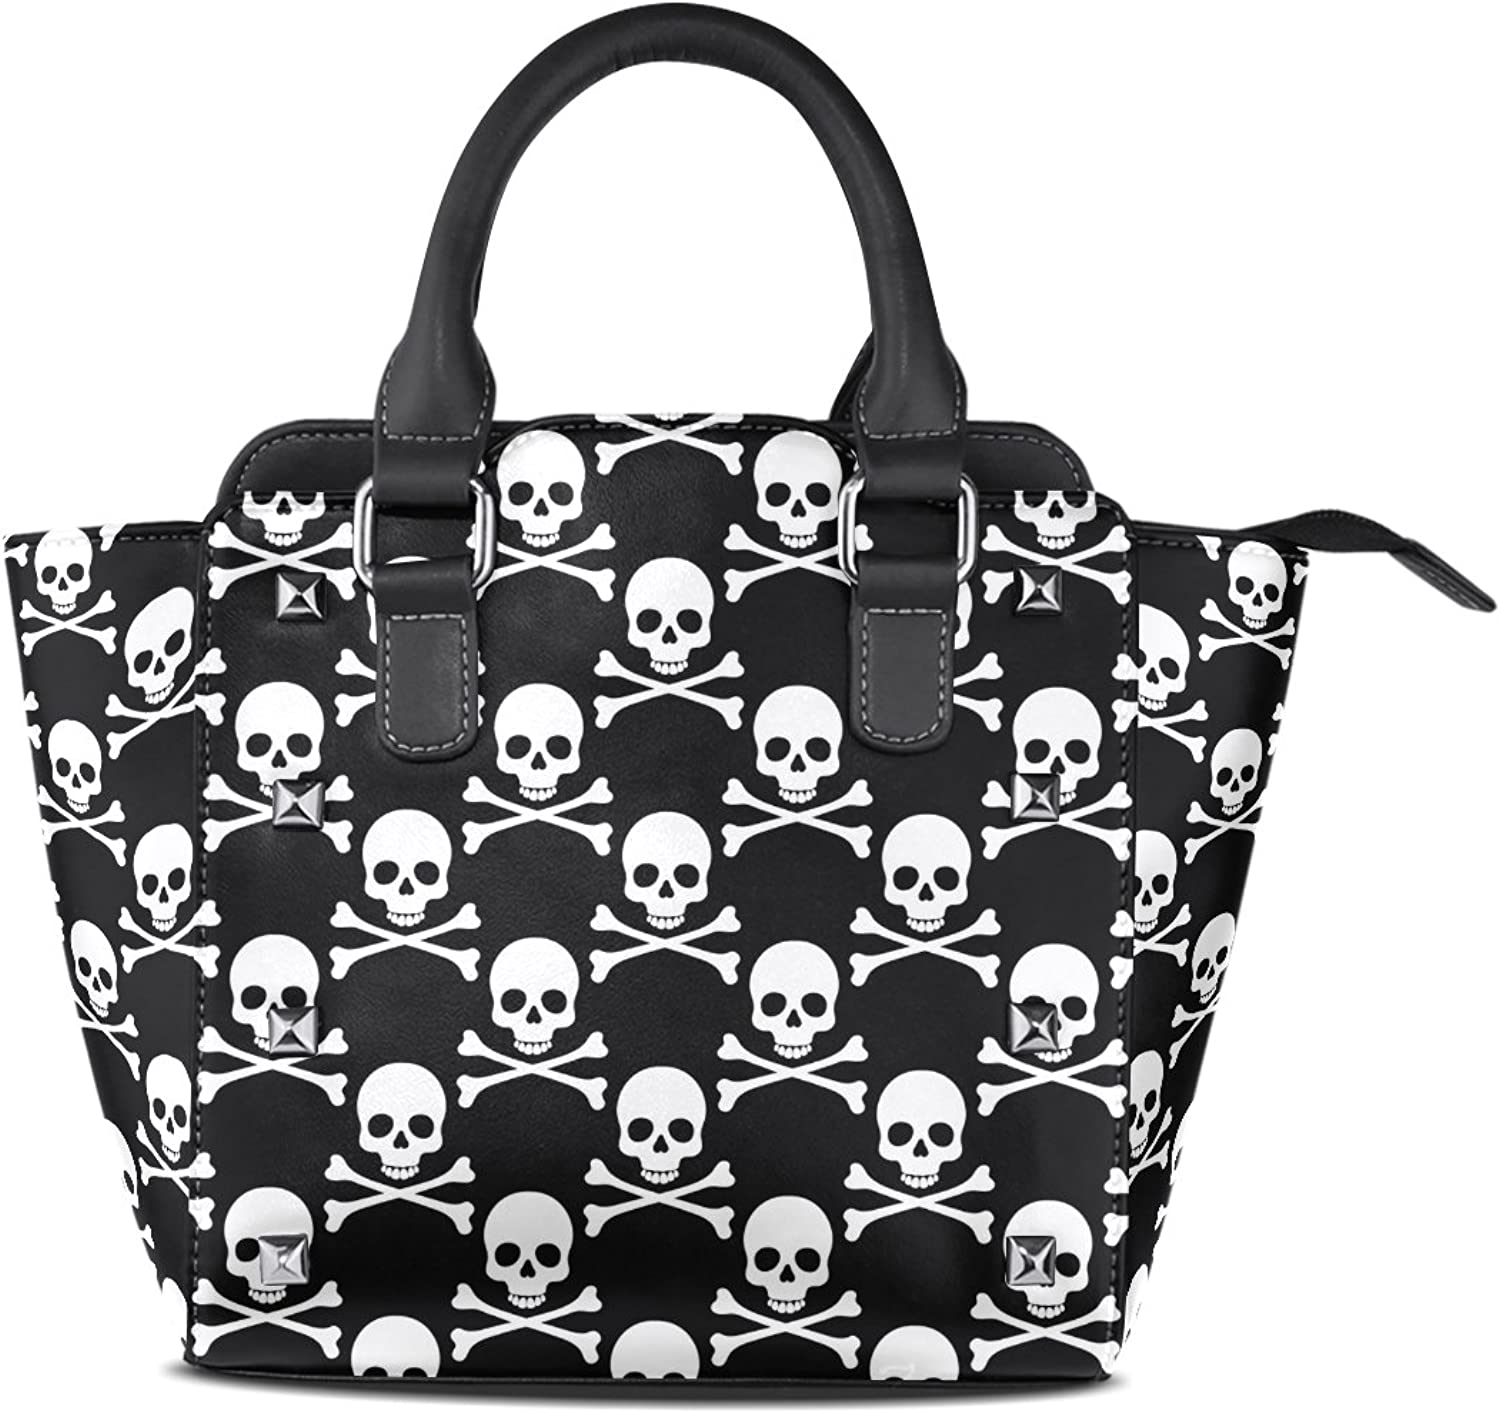 My Little Nest Women's Top Handle Satchel Handbag Black White Skulls Pattern Ladies PU Leather Shoulder Bag Crossbody Bag